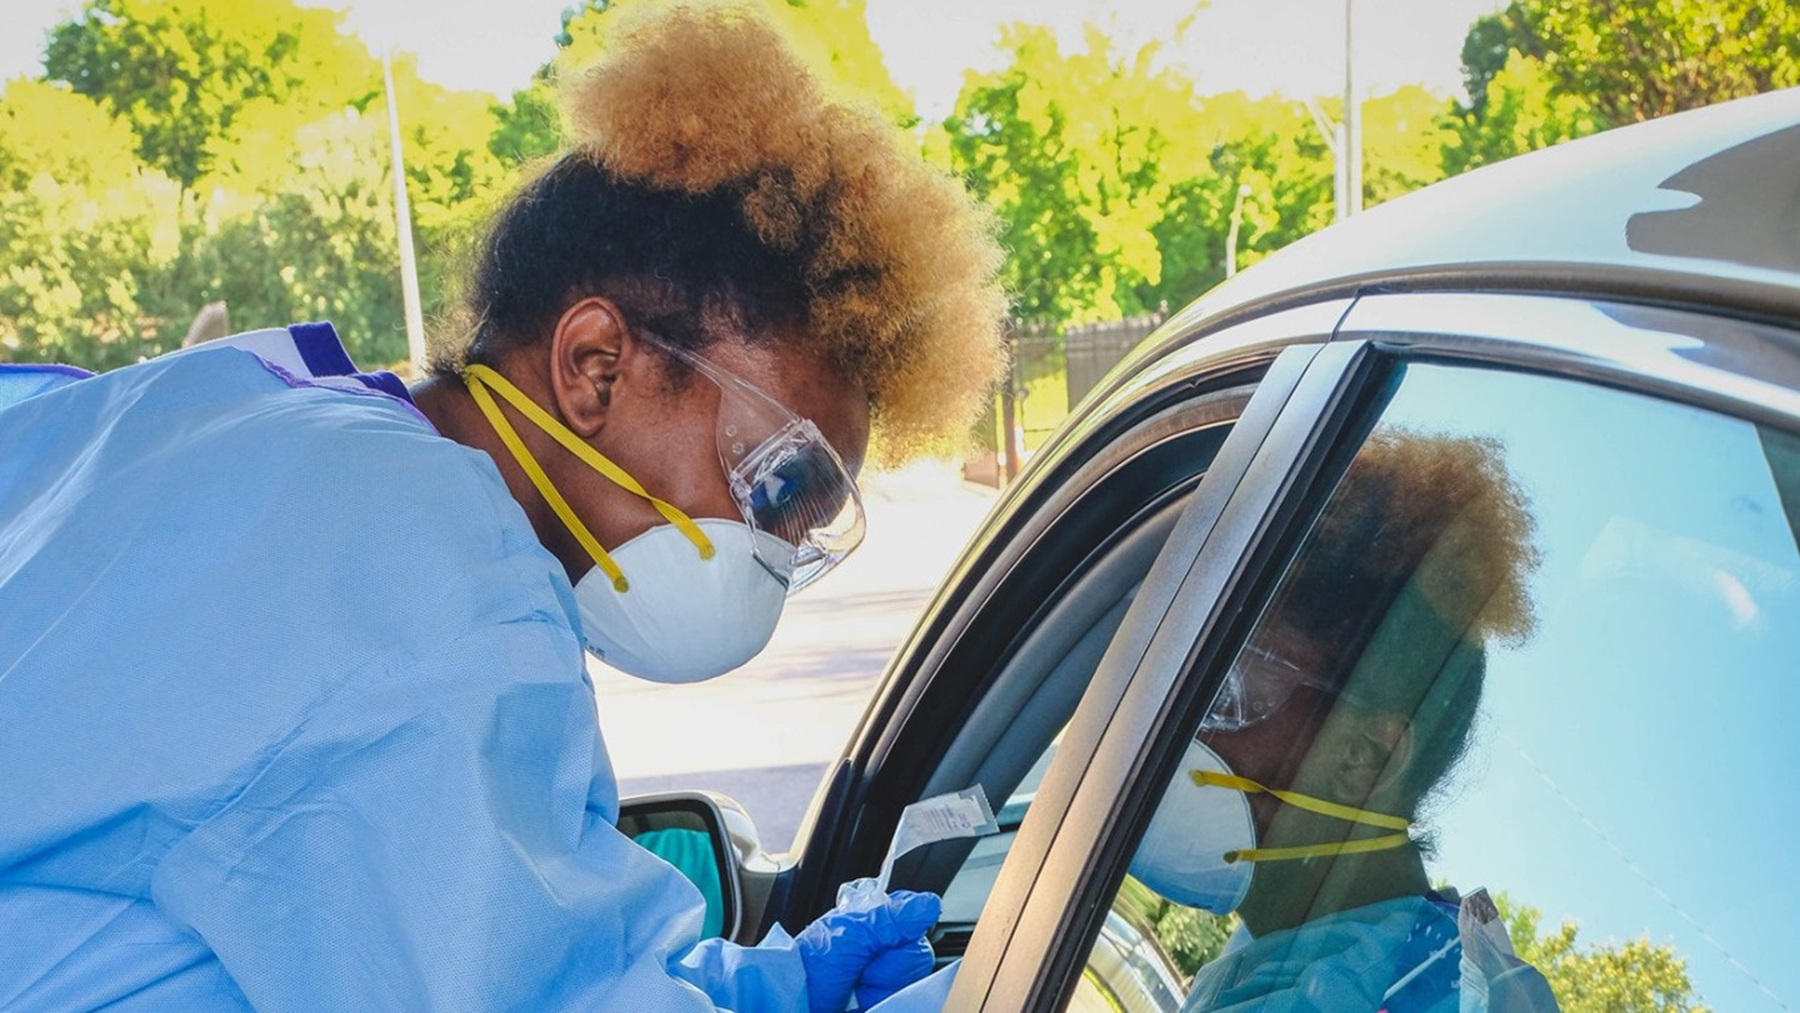 A Memphis health worker at a mobile testing site speaks to patients in a car. (Photo courtesy of Church Health)